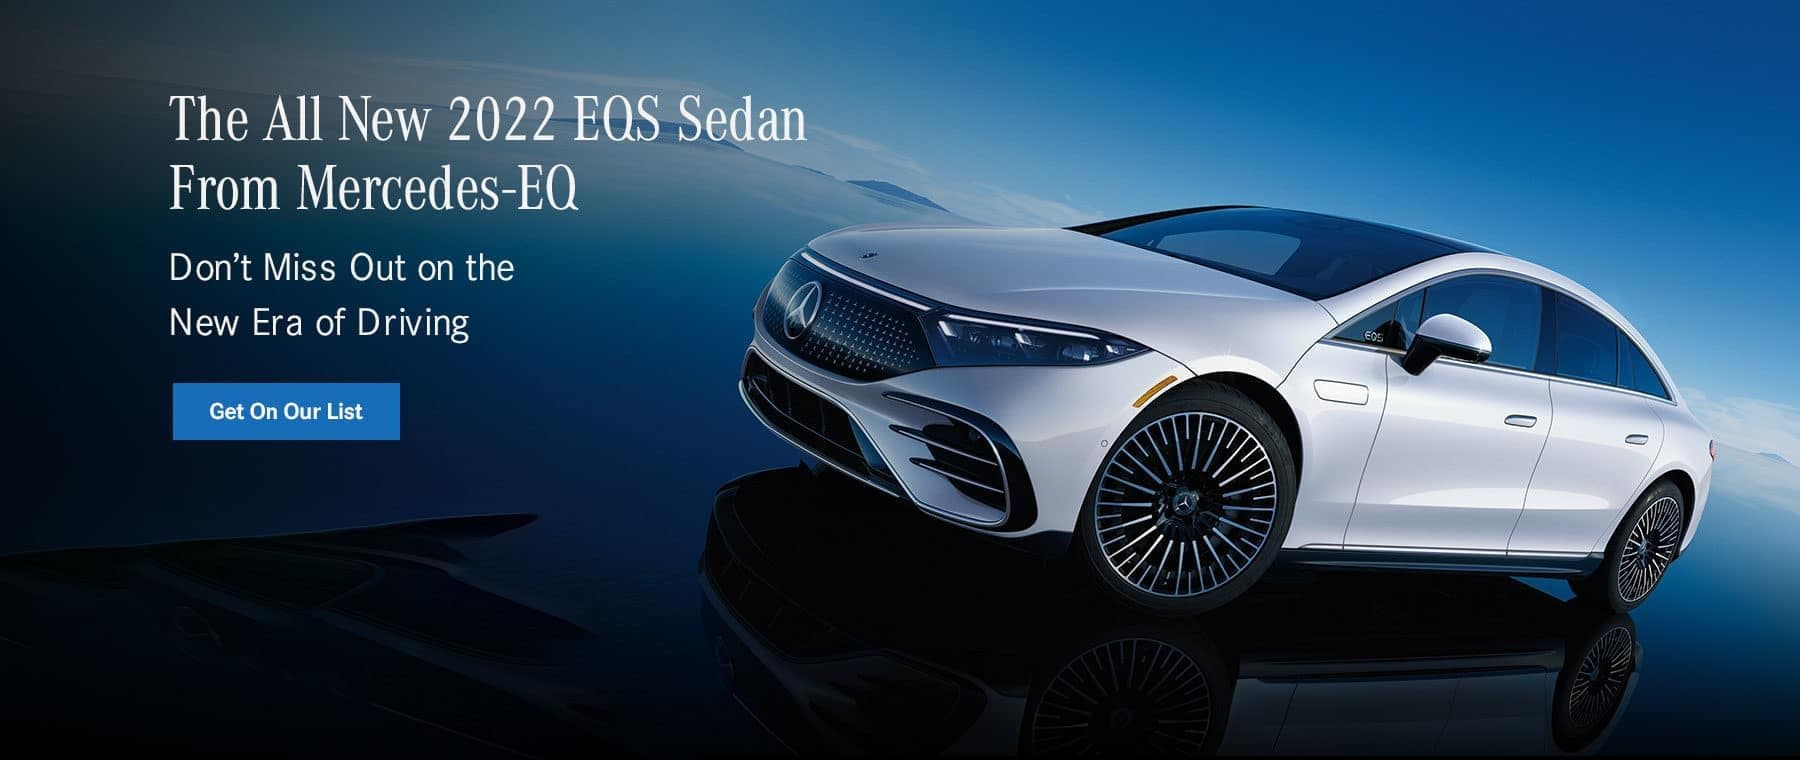 The all-new 2022 EQS Sedan from MB-EQ - Get On Our List